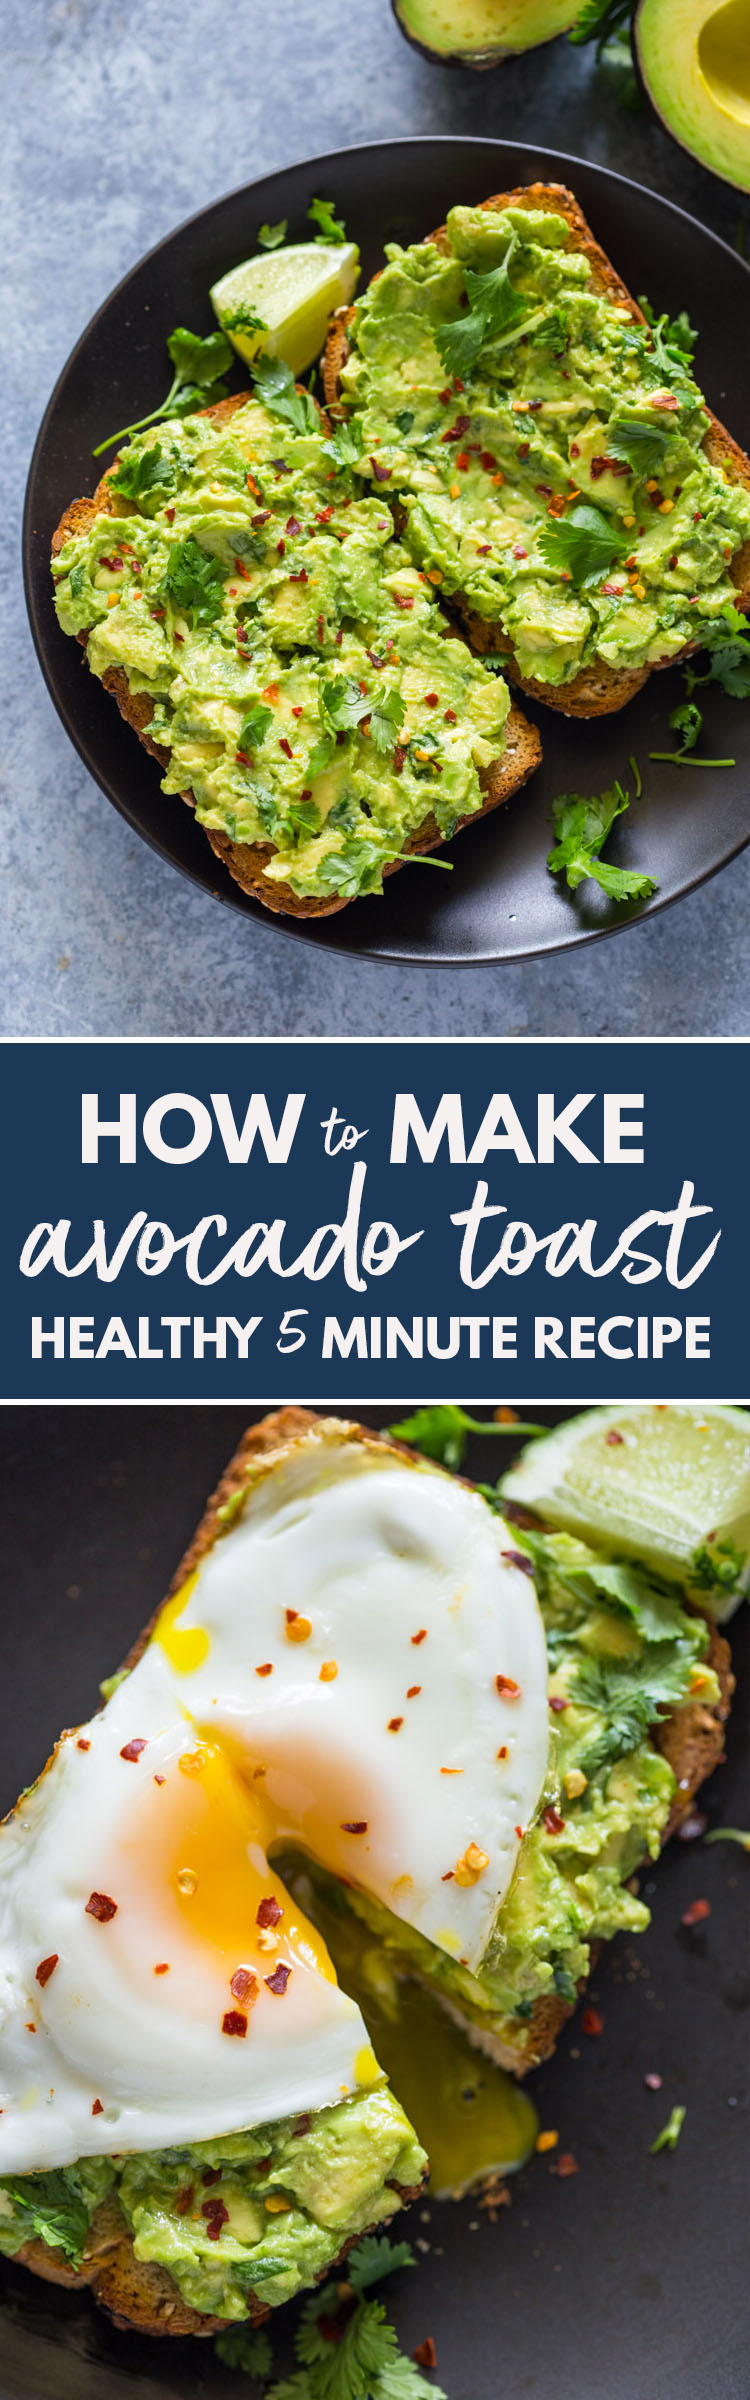 Healthy 5 Minute Avocado Toast